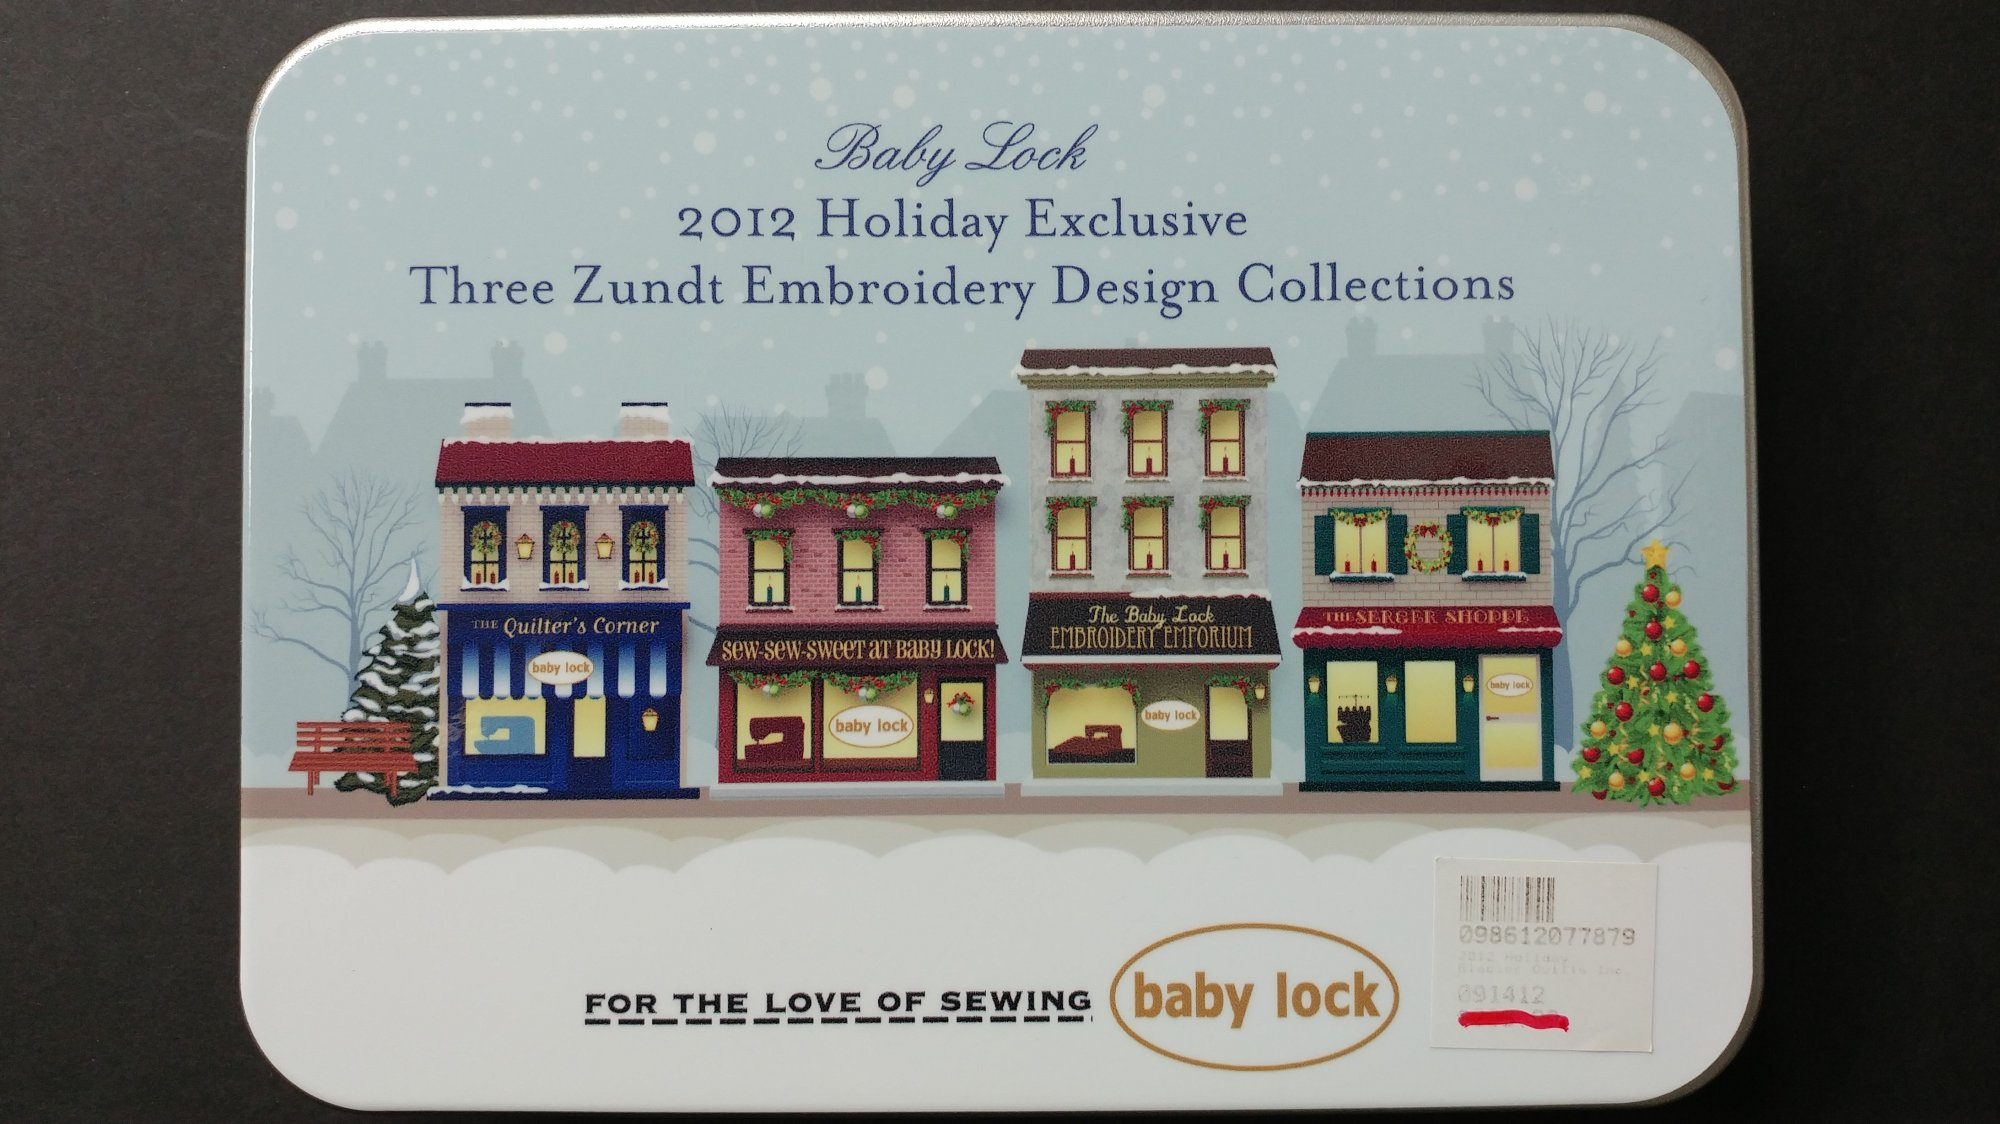 2012 Holiday Exclusive - 3 Zundt Embroidery Design Collection